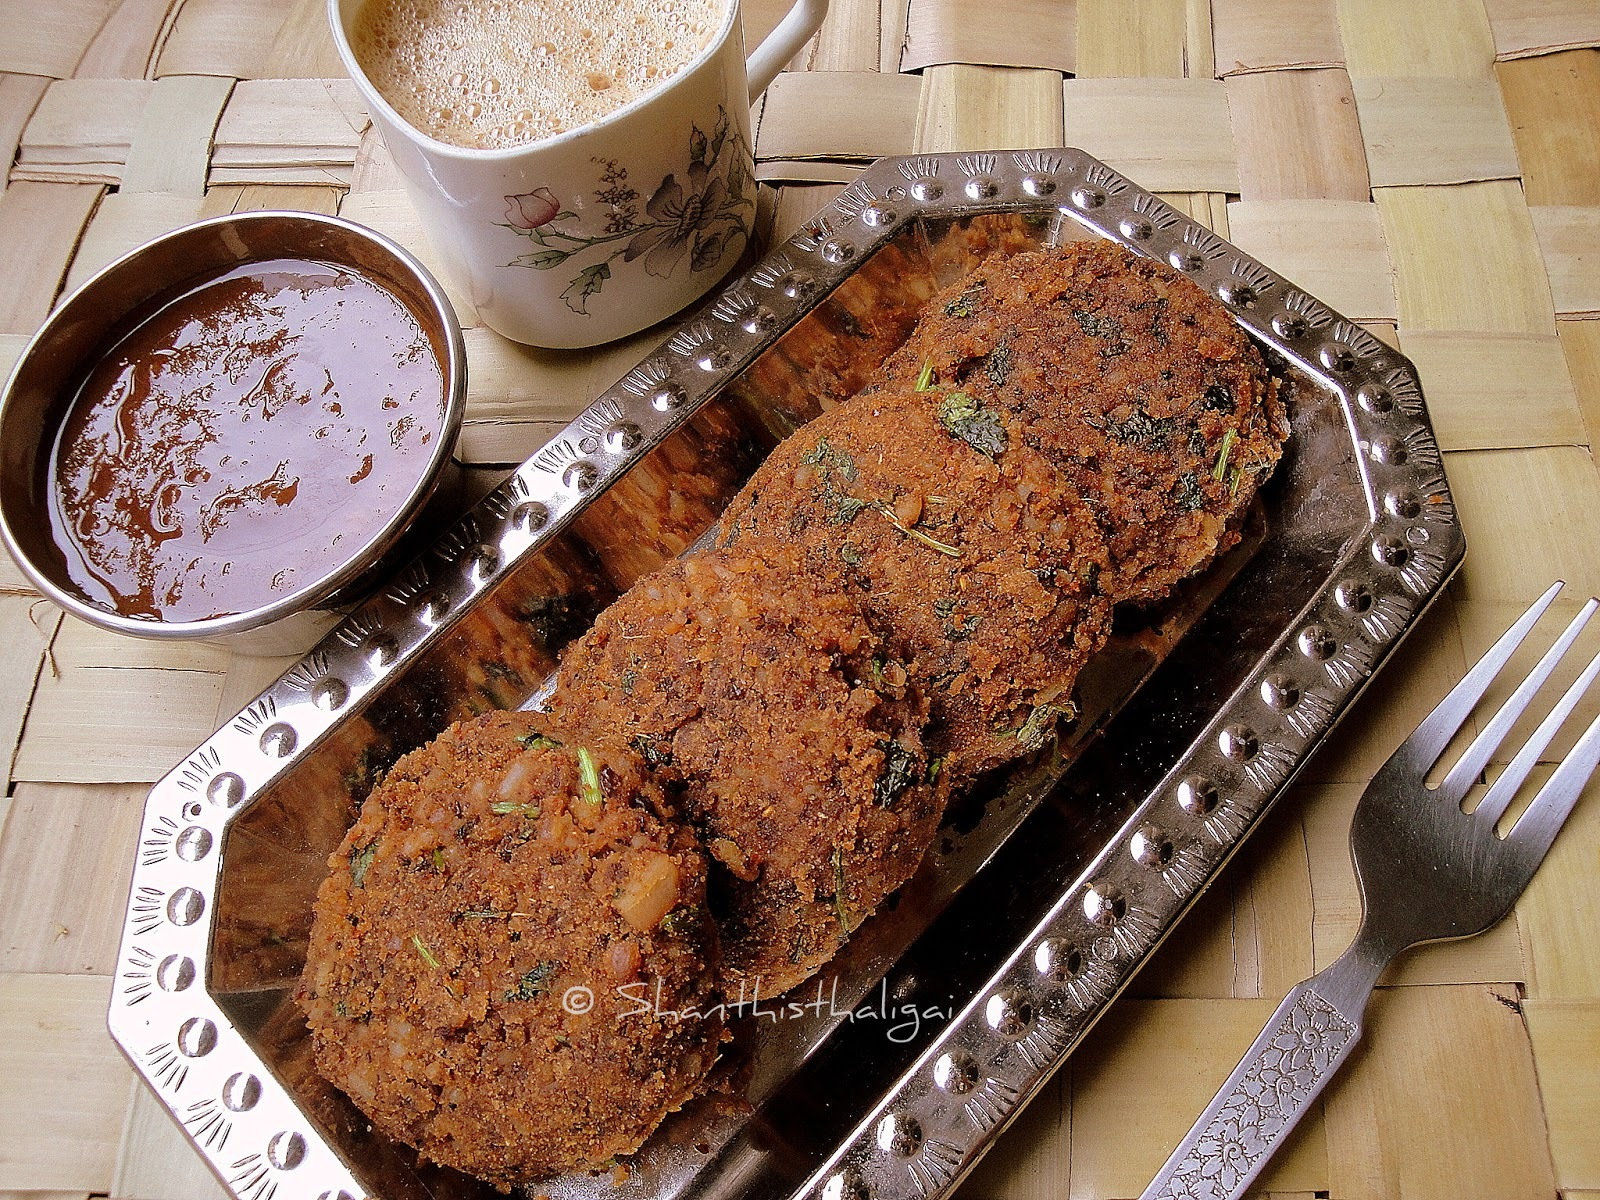 MILLET RAJMA PATTICE / MILLET RED KIDNEY BEAN KEBAB / MILLET BEAN PATTIES